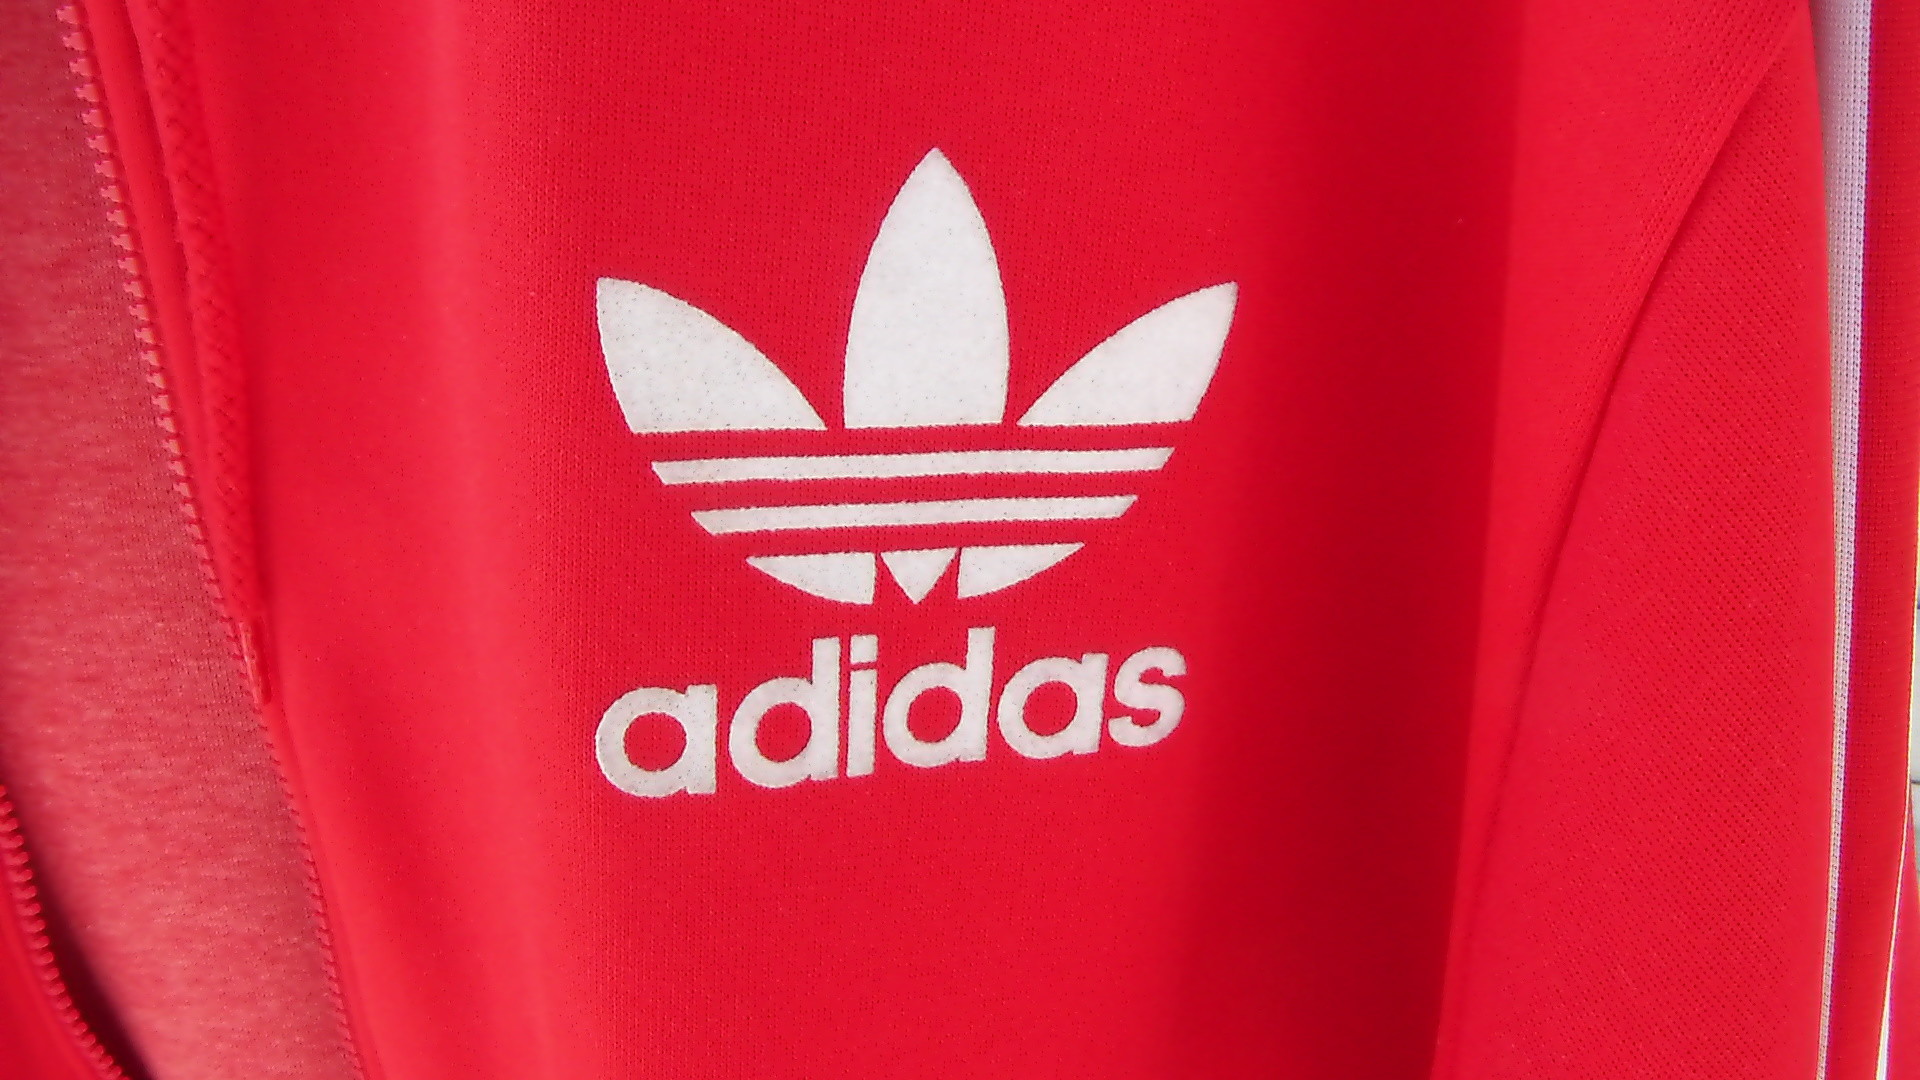 adidas and nike wallpapers, adidas backgrounds